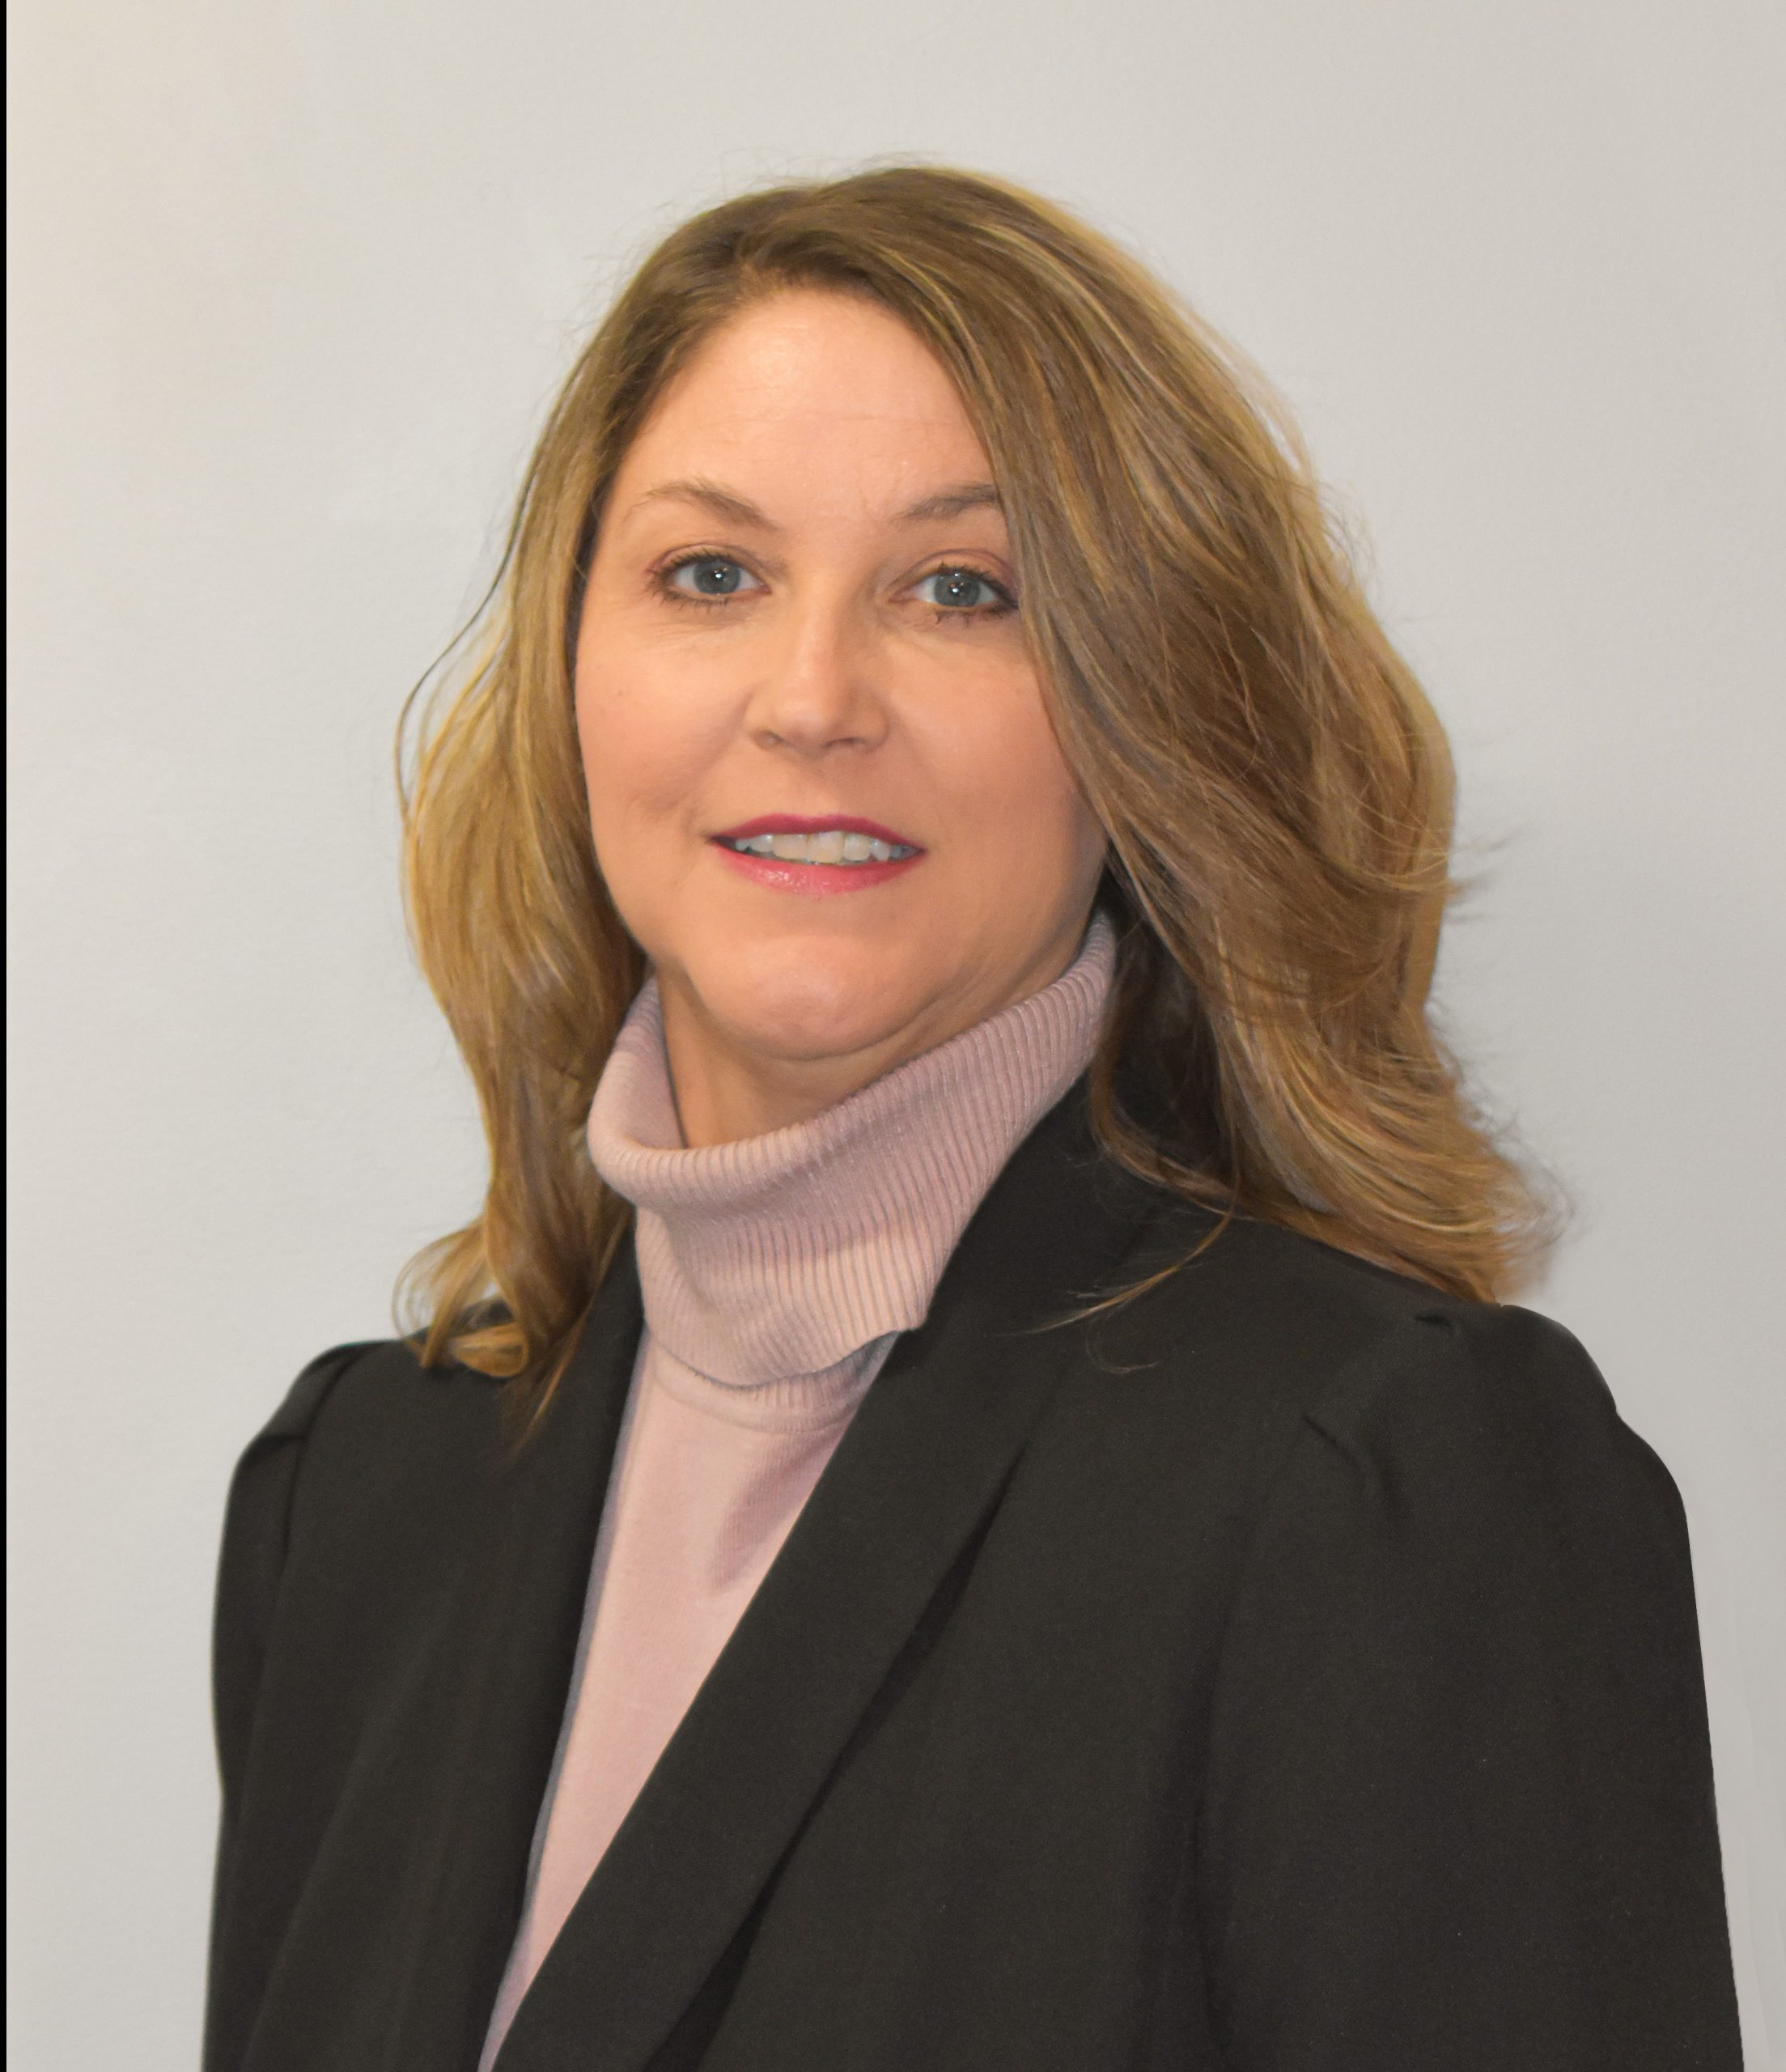 Angela Belcher, a paralegal for the Law Office of Michael J. Bell, PLLC